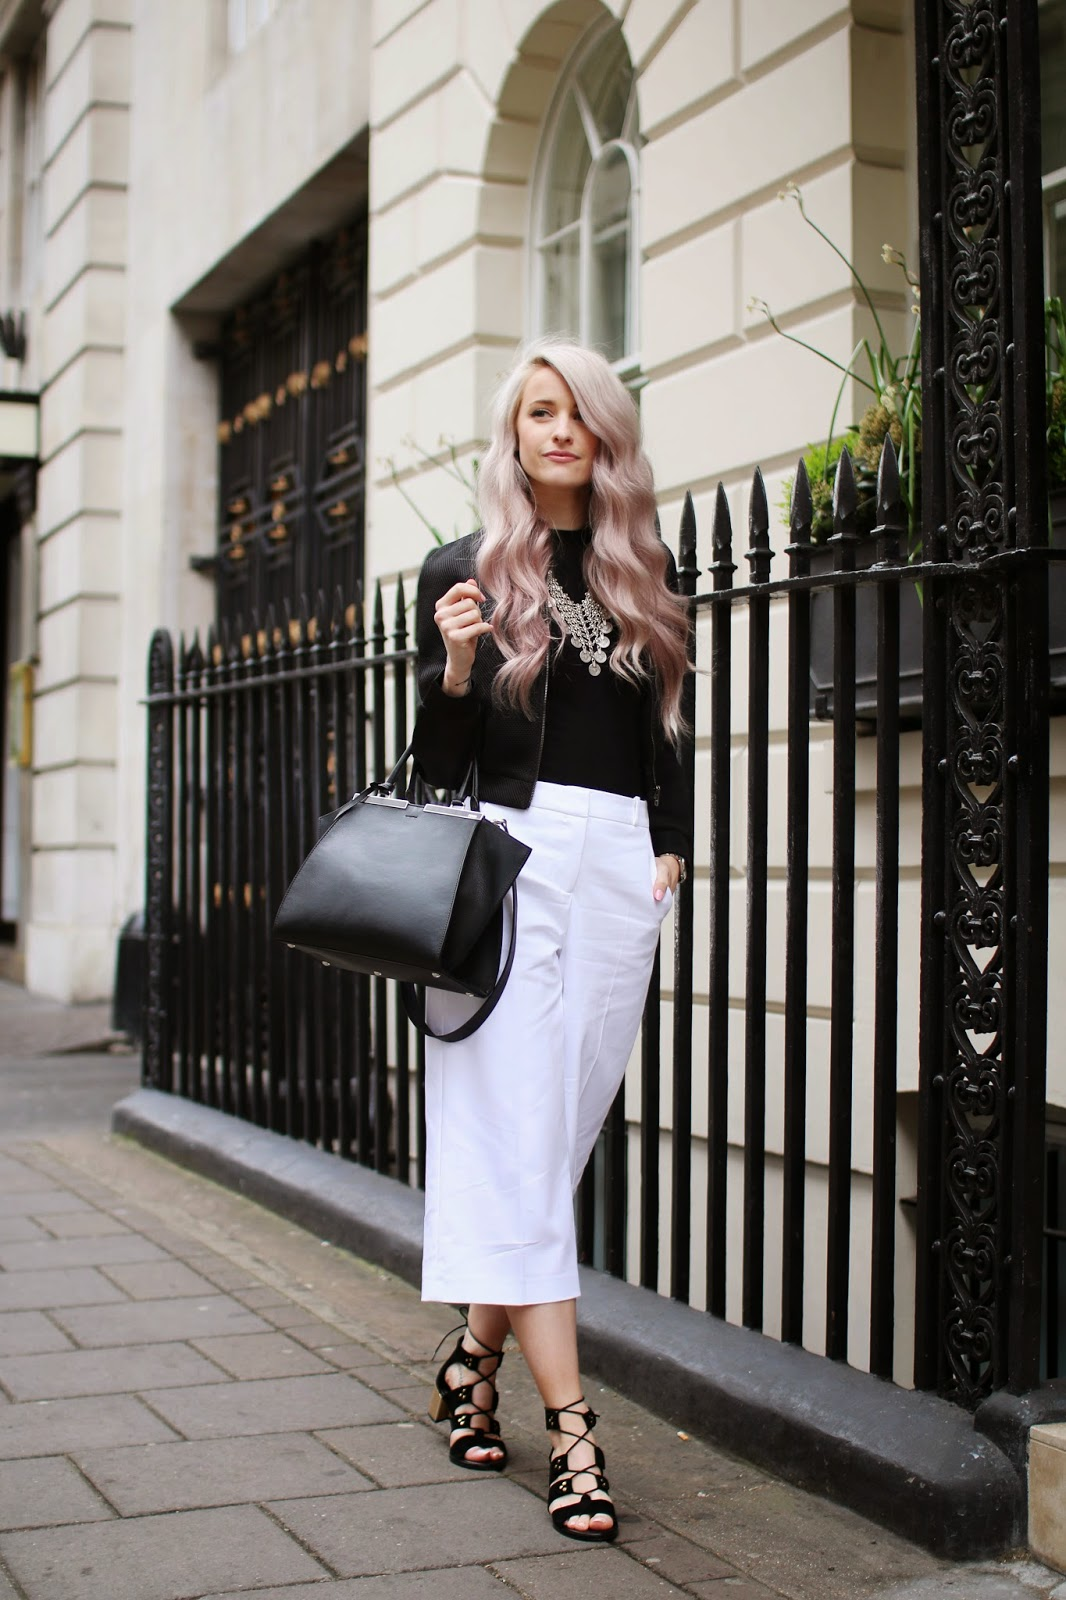 The Best Italian Restaurant in London, Novikov in Mayfair wearing Senso Black Suede Lace Up Heels, River Island White Culottes, A topshop black ribbed top, a Missguided Mesh Biker Jacket and the Fendi 3jours Tote